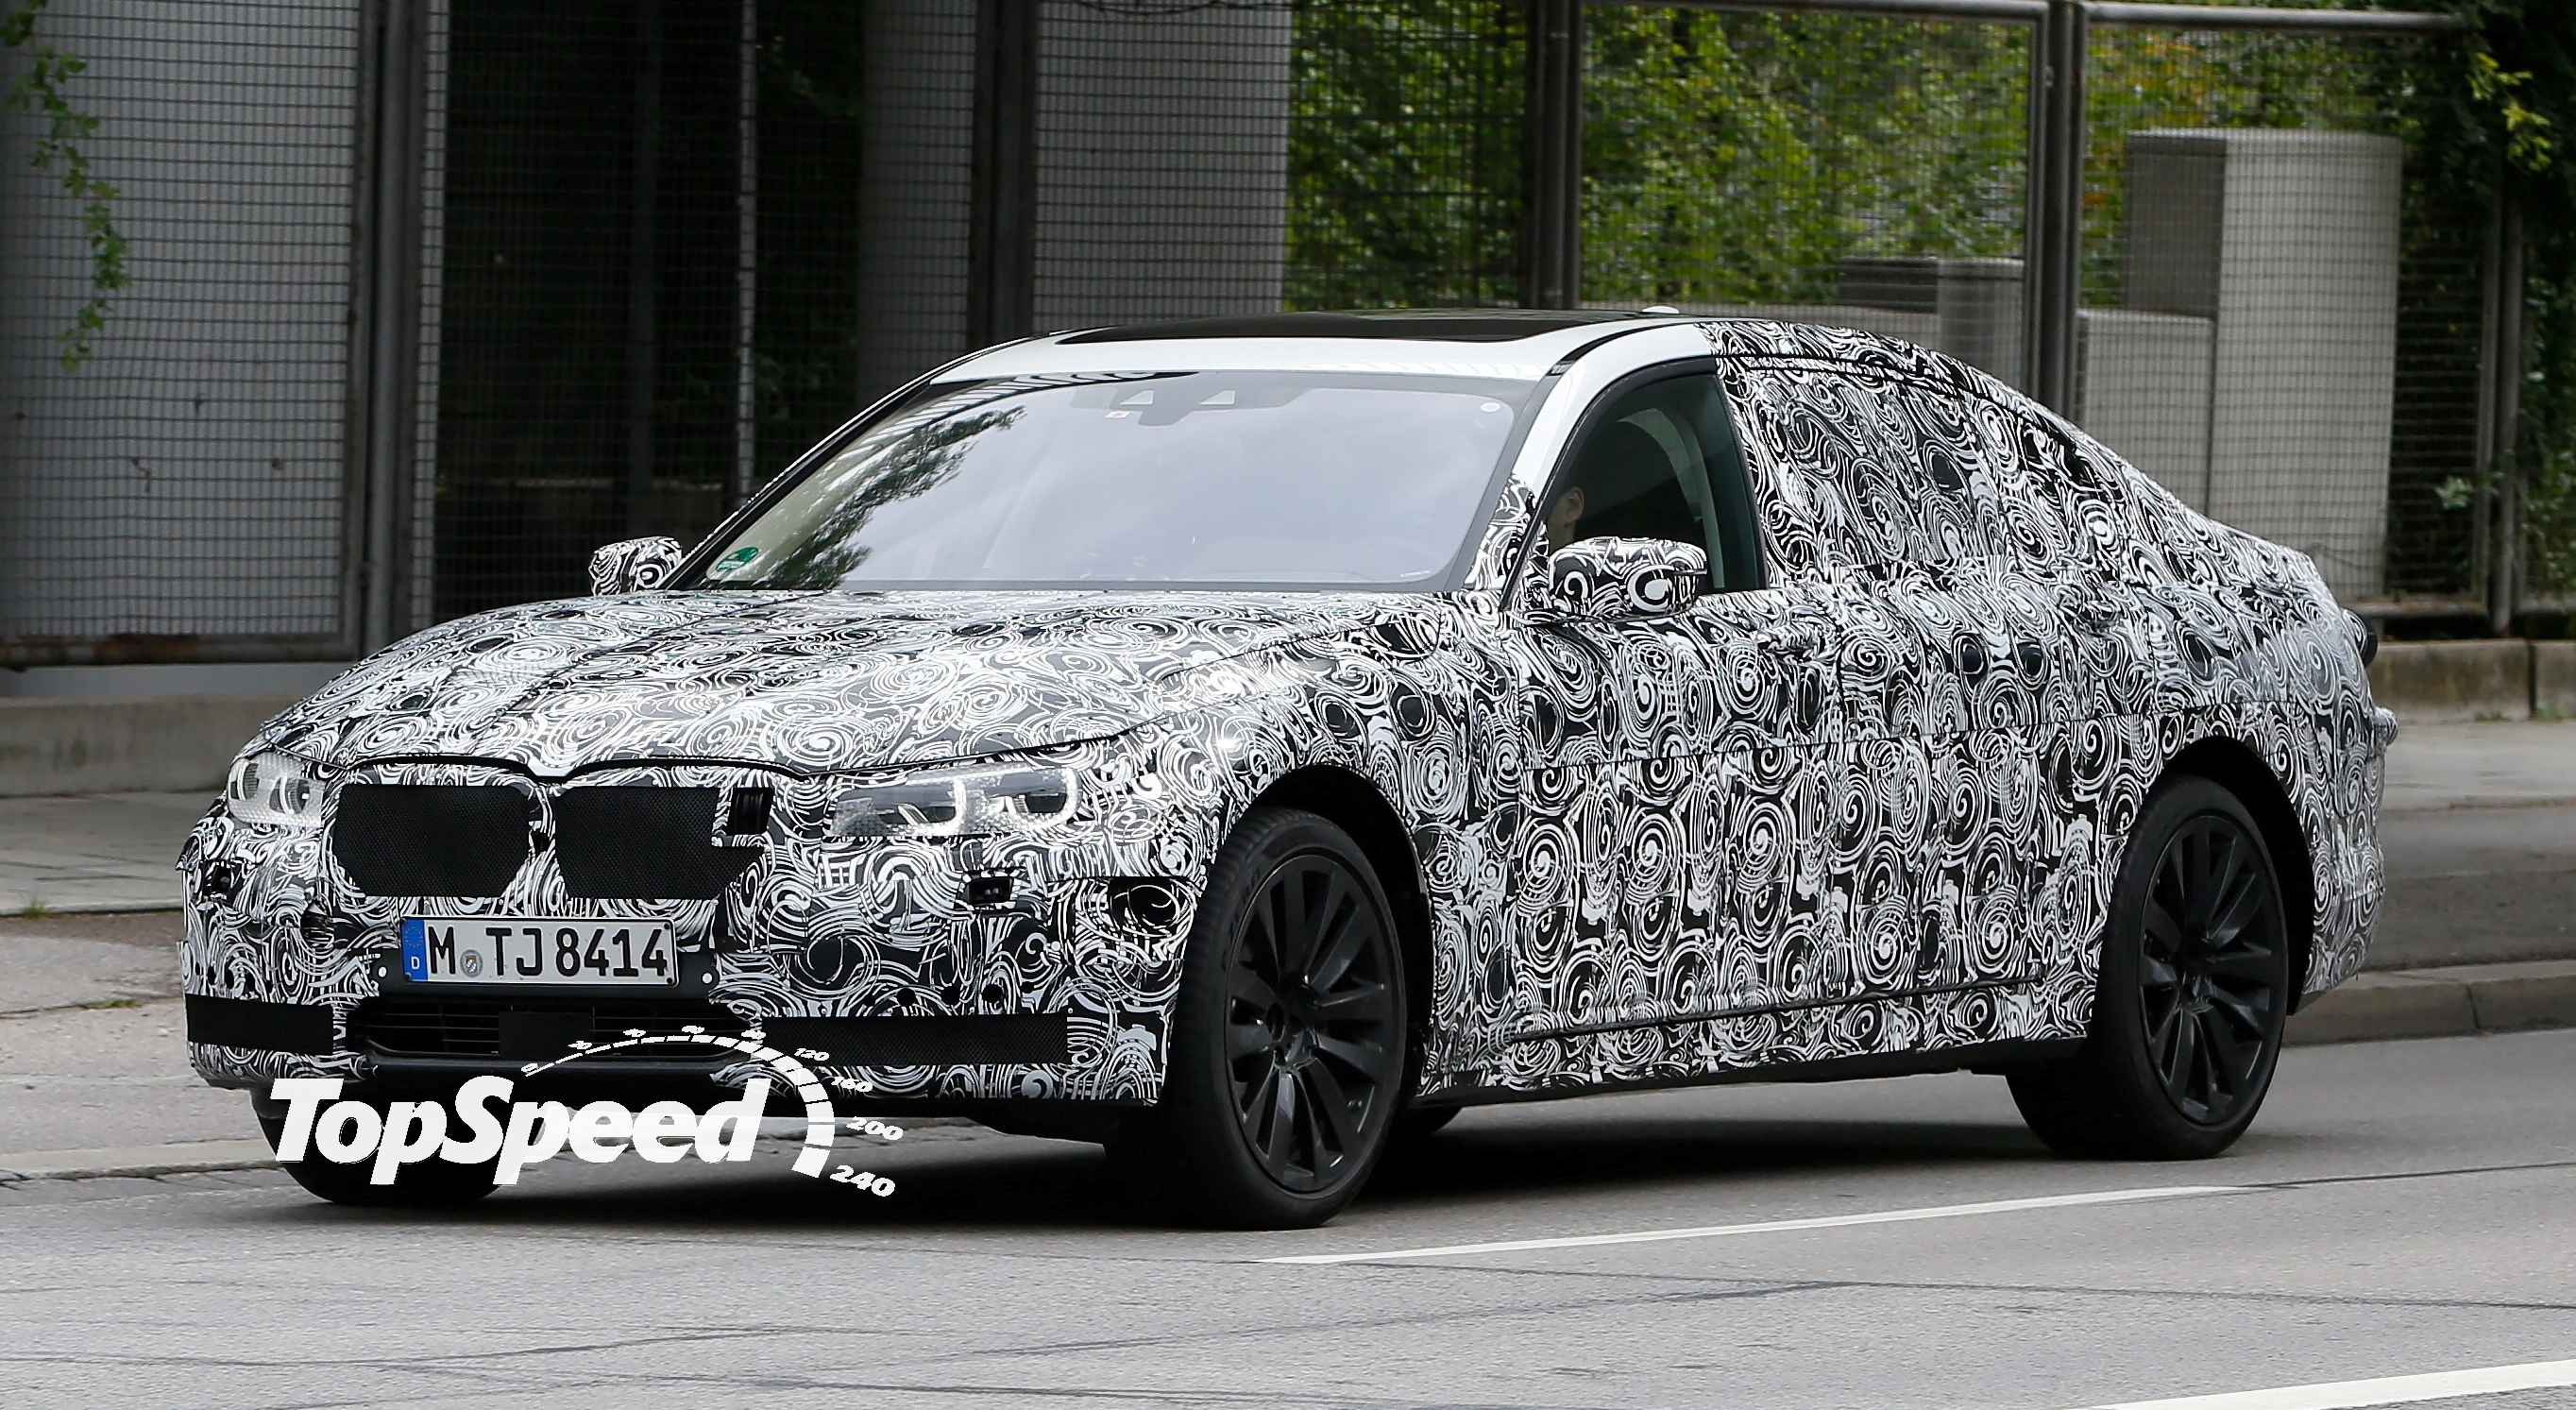 New BMW 7 Series >> Spy Shots: BMW 7 Series Shows Us Its Headlights | Top Speed